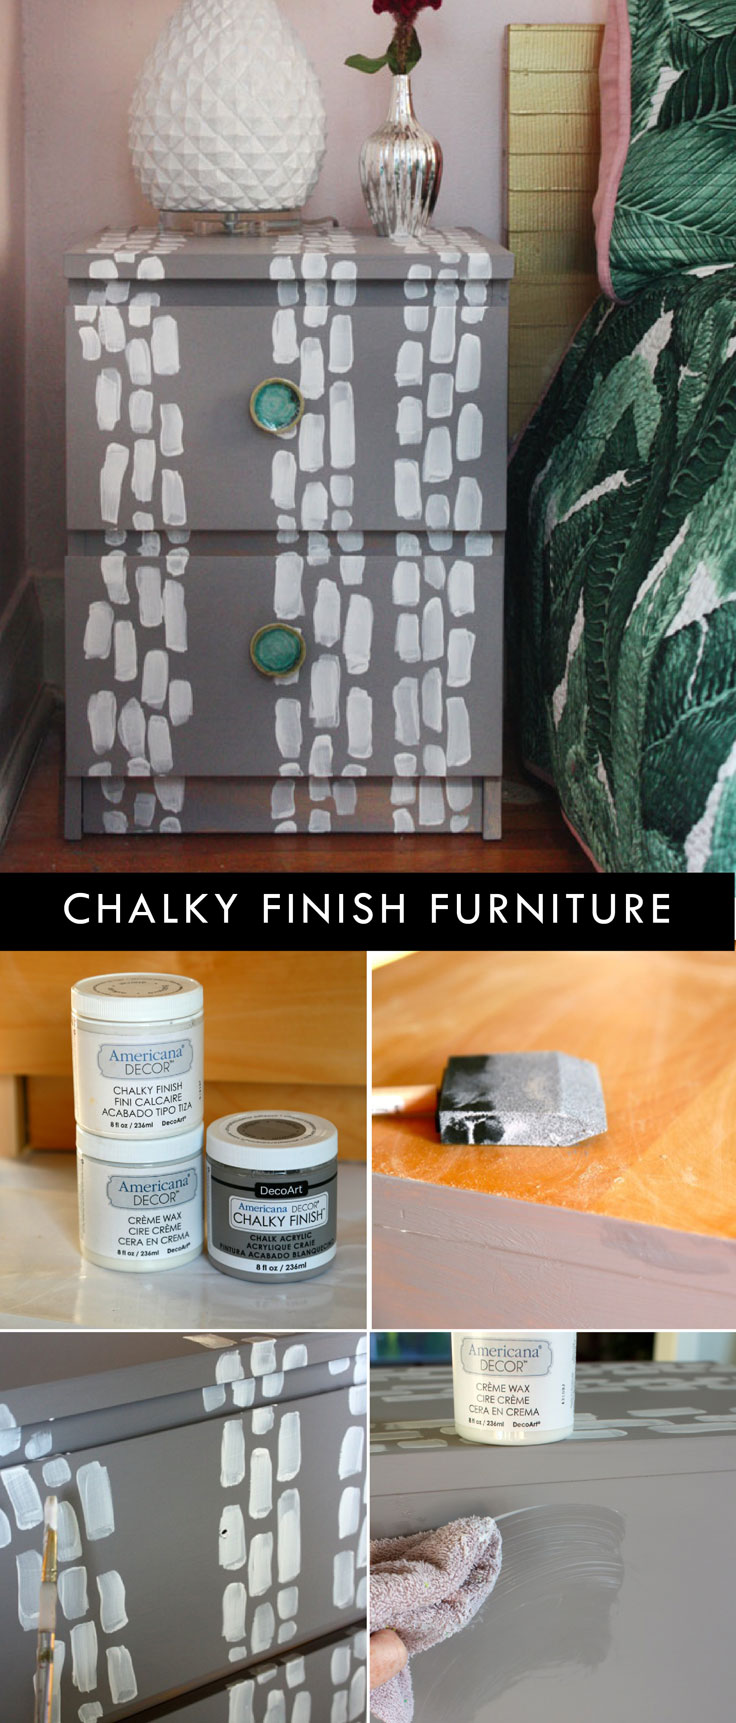 777-chalky-finish-painted-furniture-pinnable